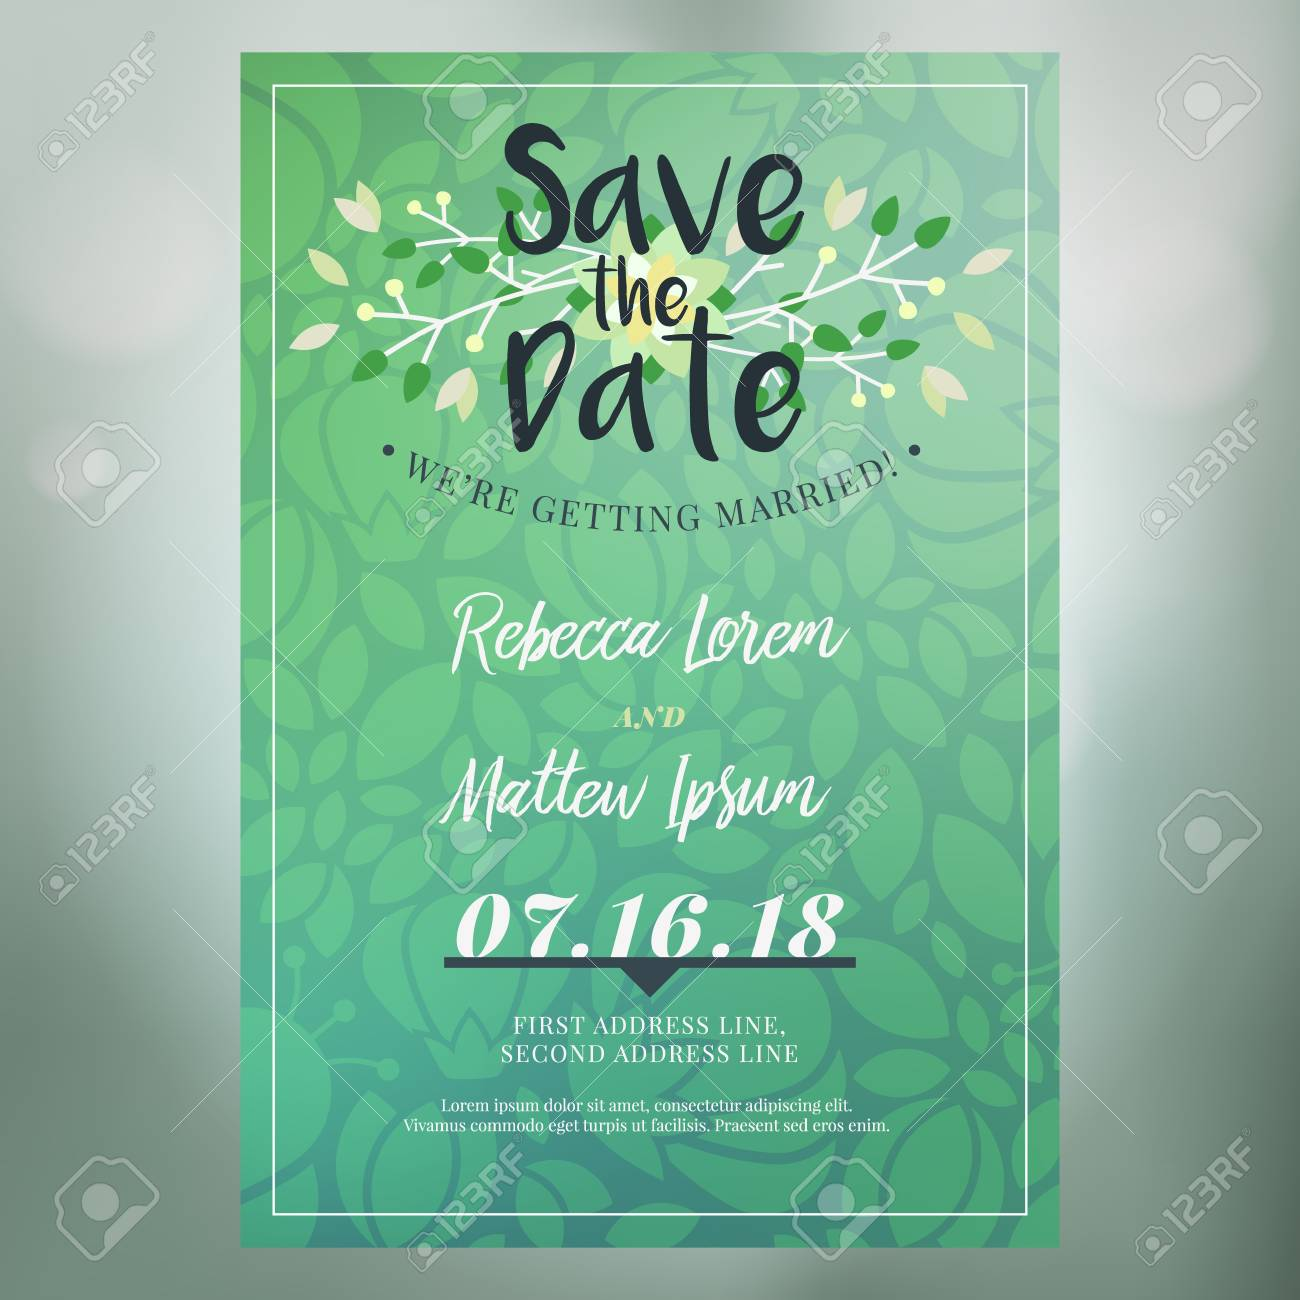 wedding save the date vector.html